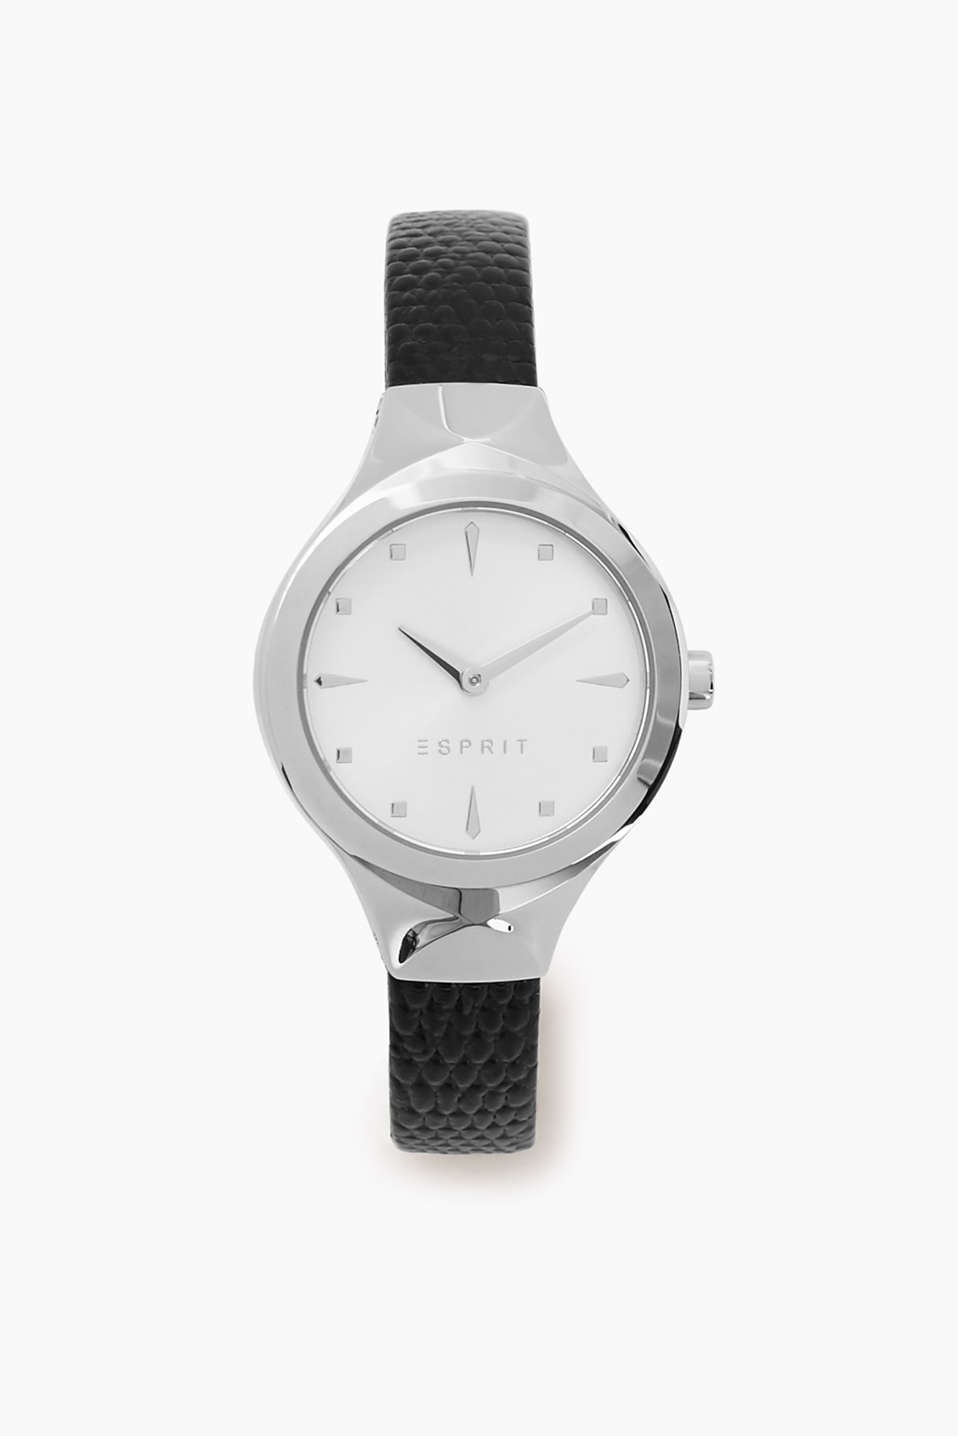 Watch with a narrow leather strap with a relief watch case